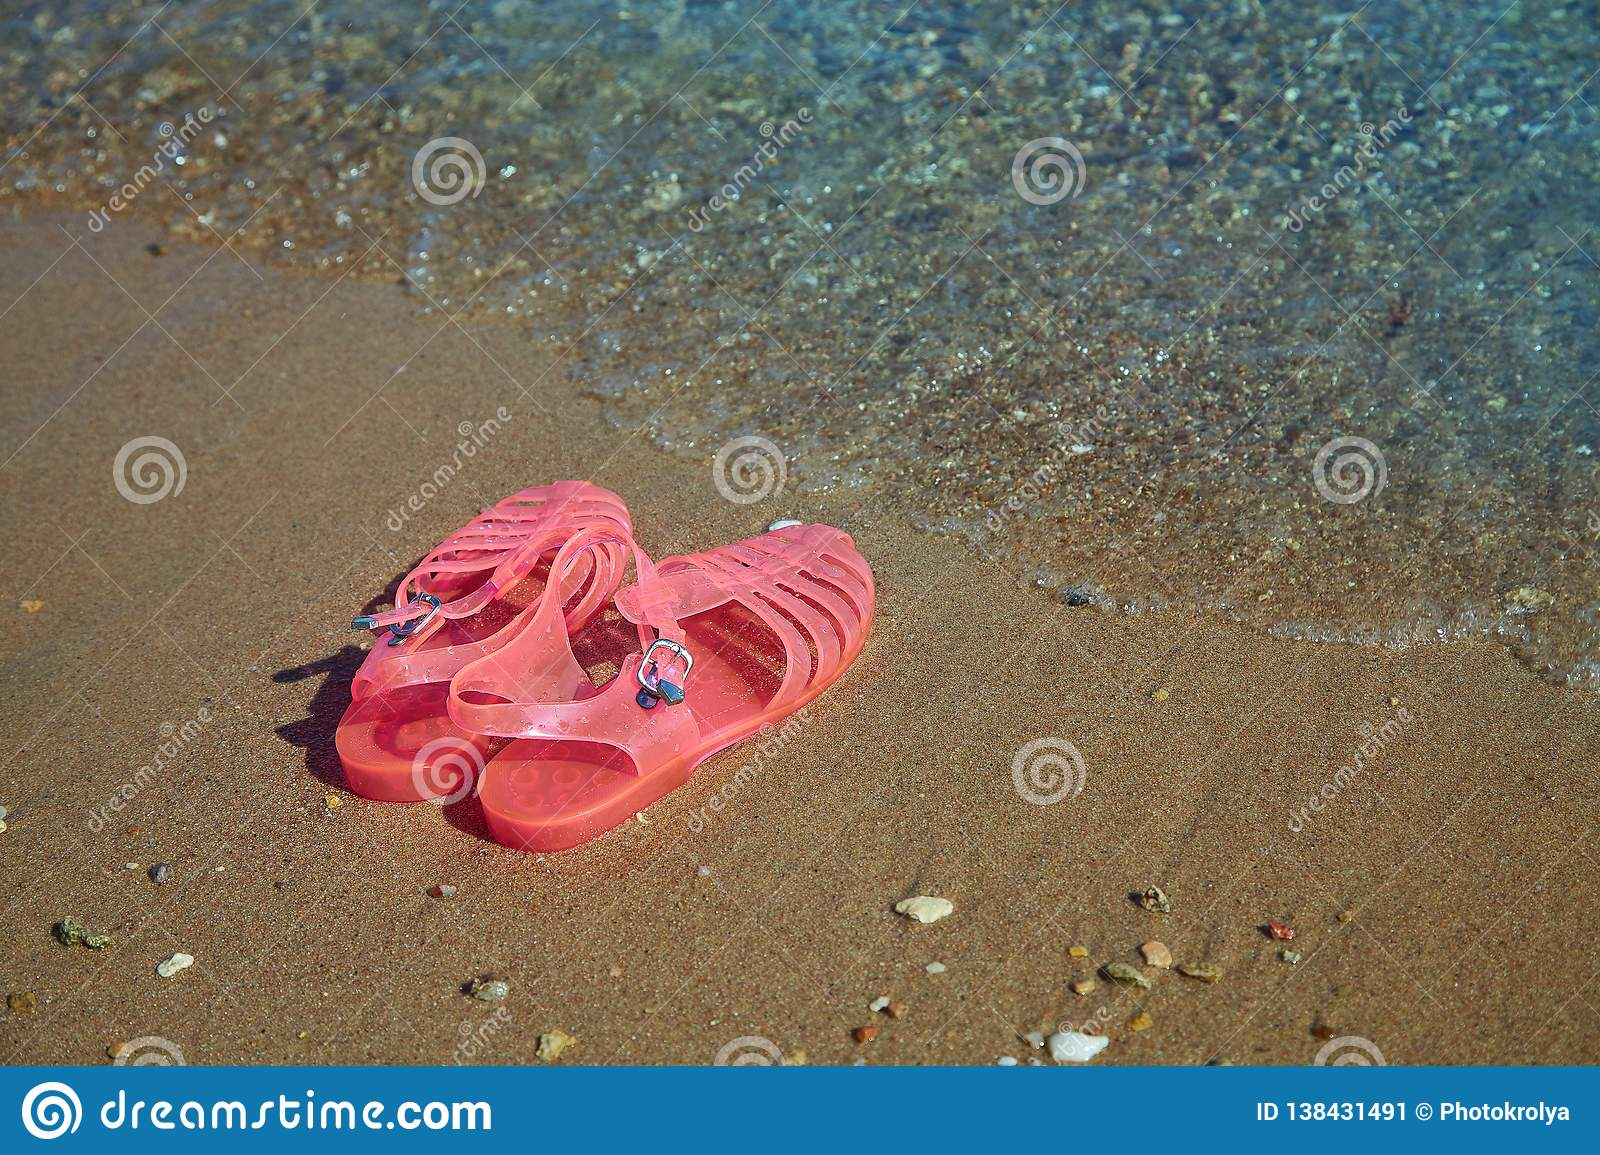 a4d328acb7e Pink Women`s JELLY SANDALS on a sea shore. LADIES FLAT JELLIES SUMMER BEACH  SHOES. Sand background